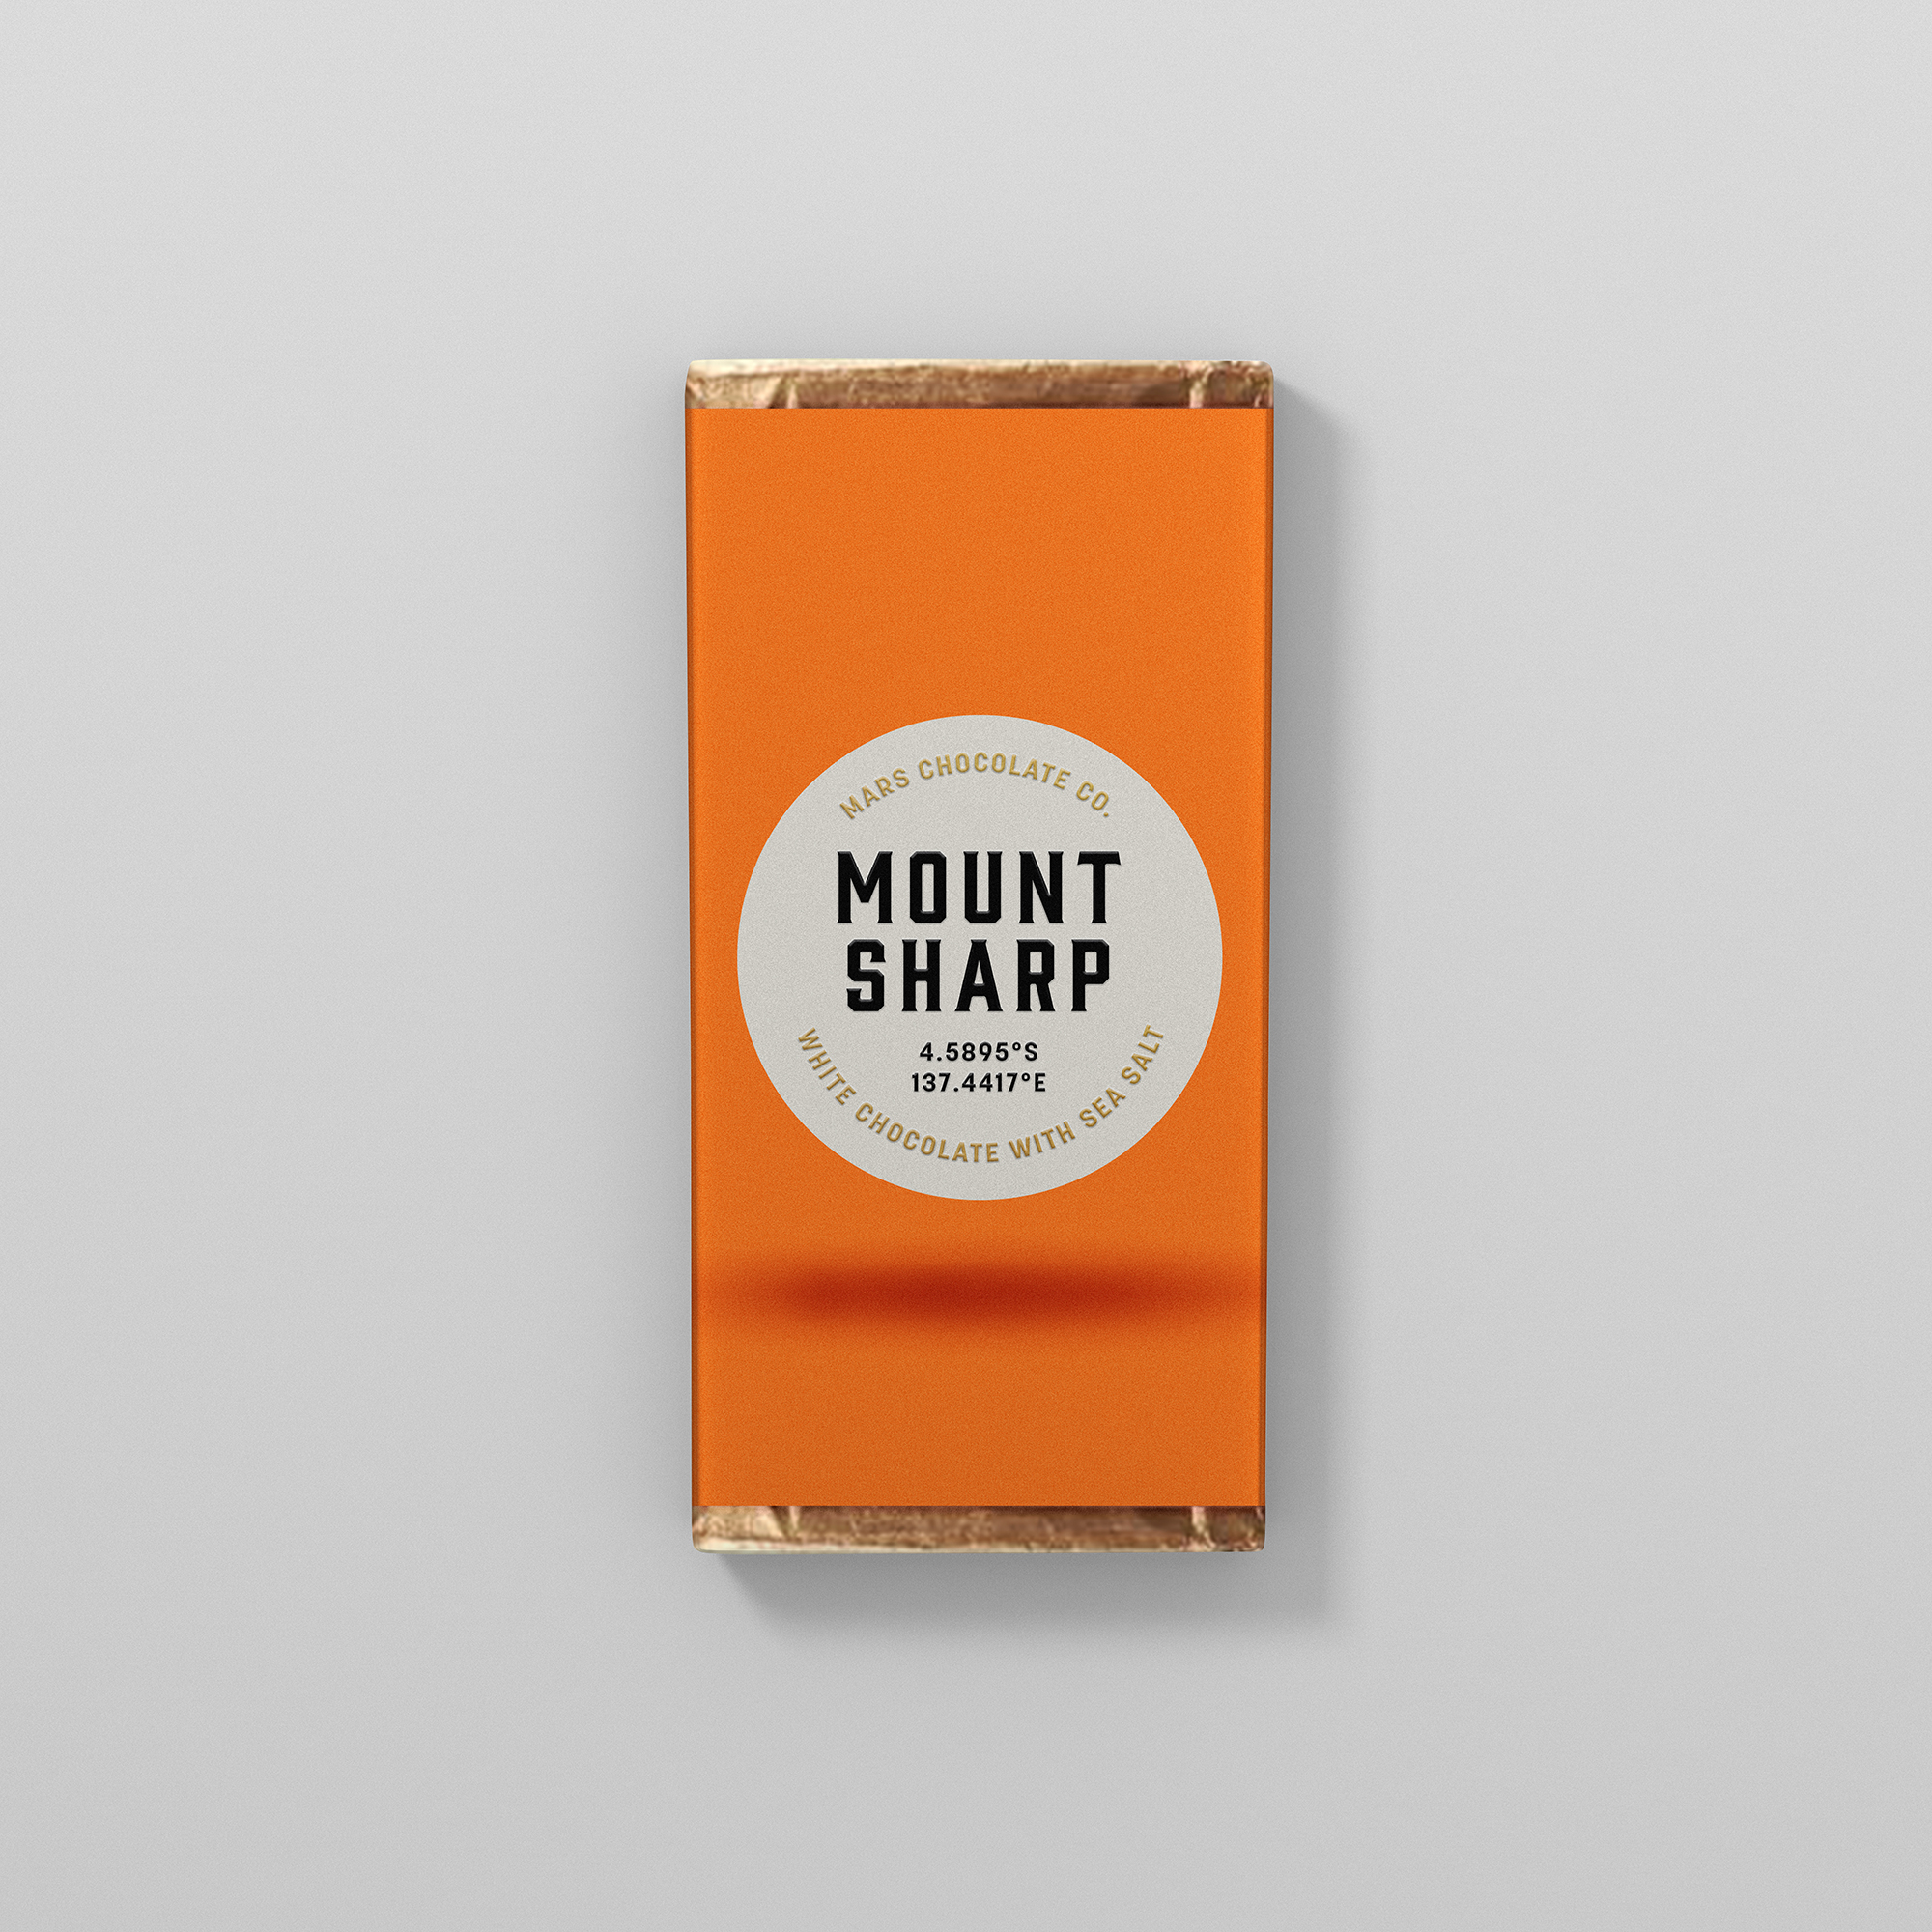 Mount Sharp white chocolate packaging Franziska Böttcher